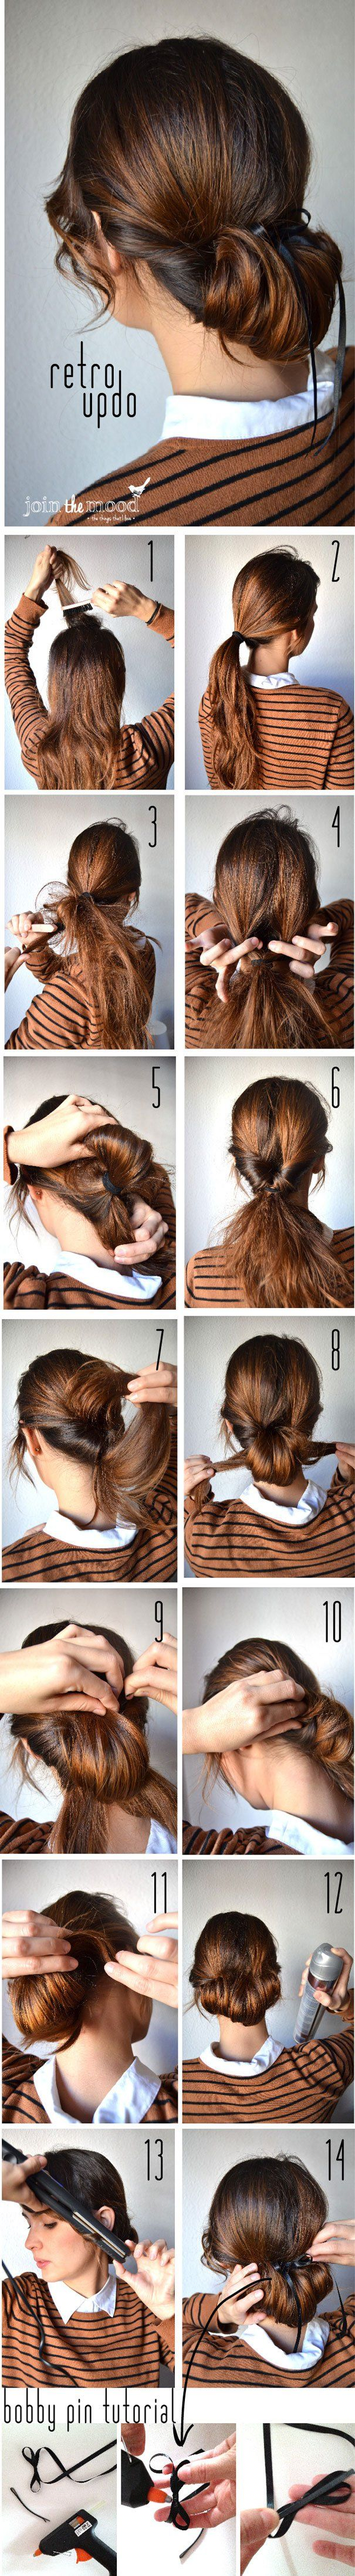 Retro Updo Hairstyle